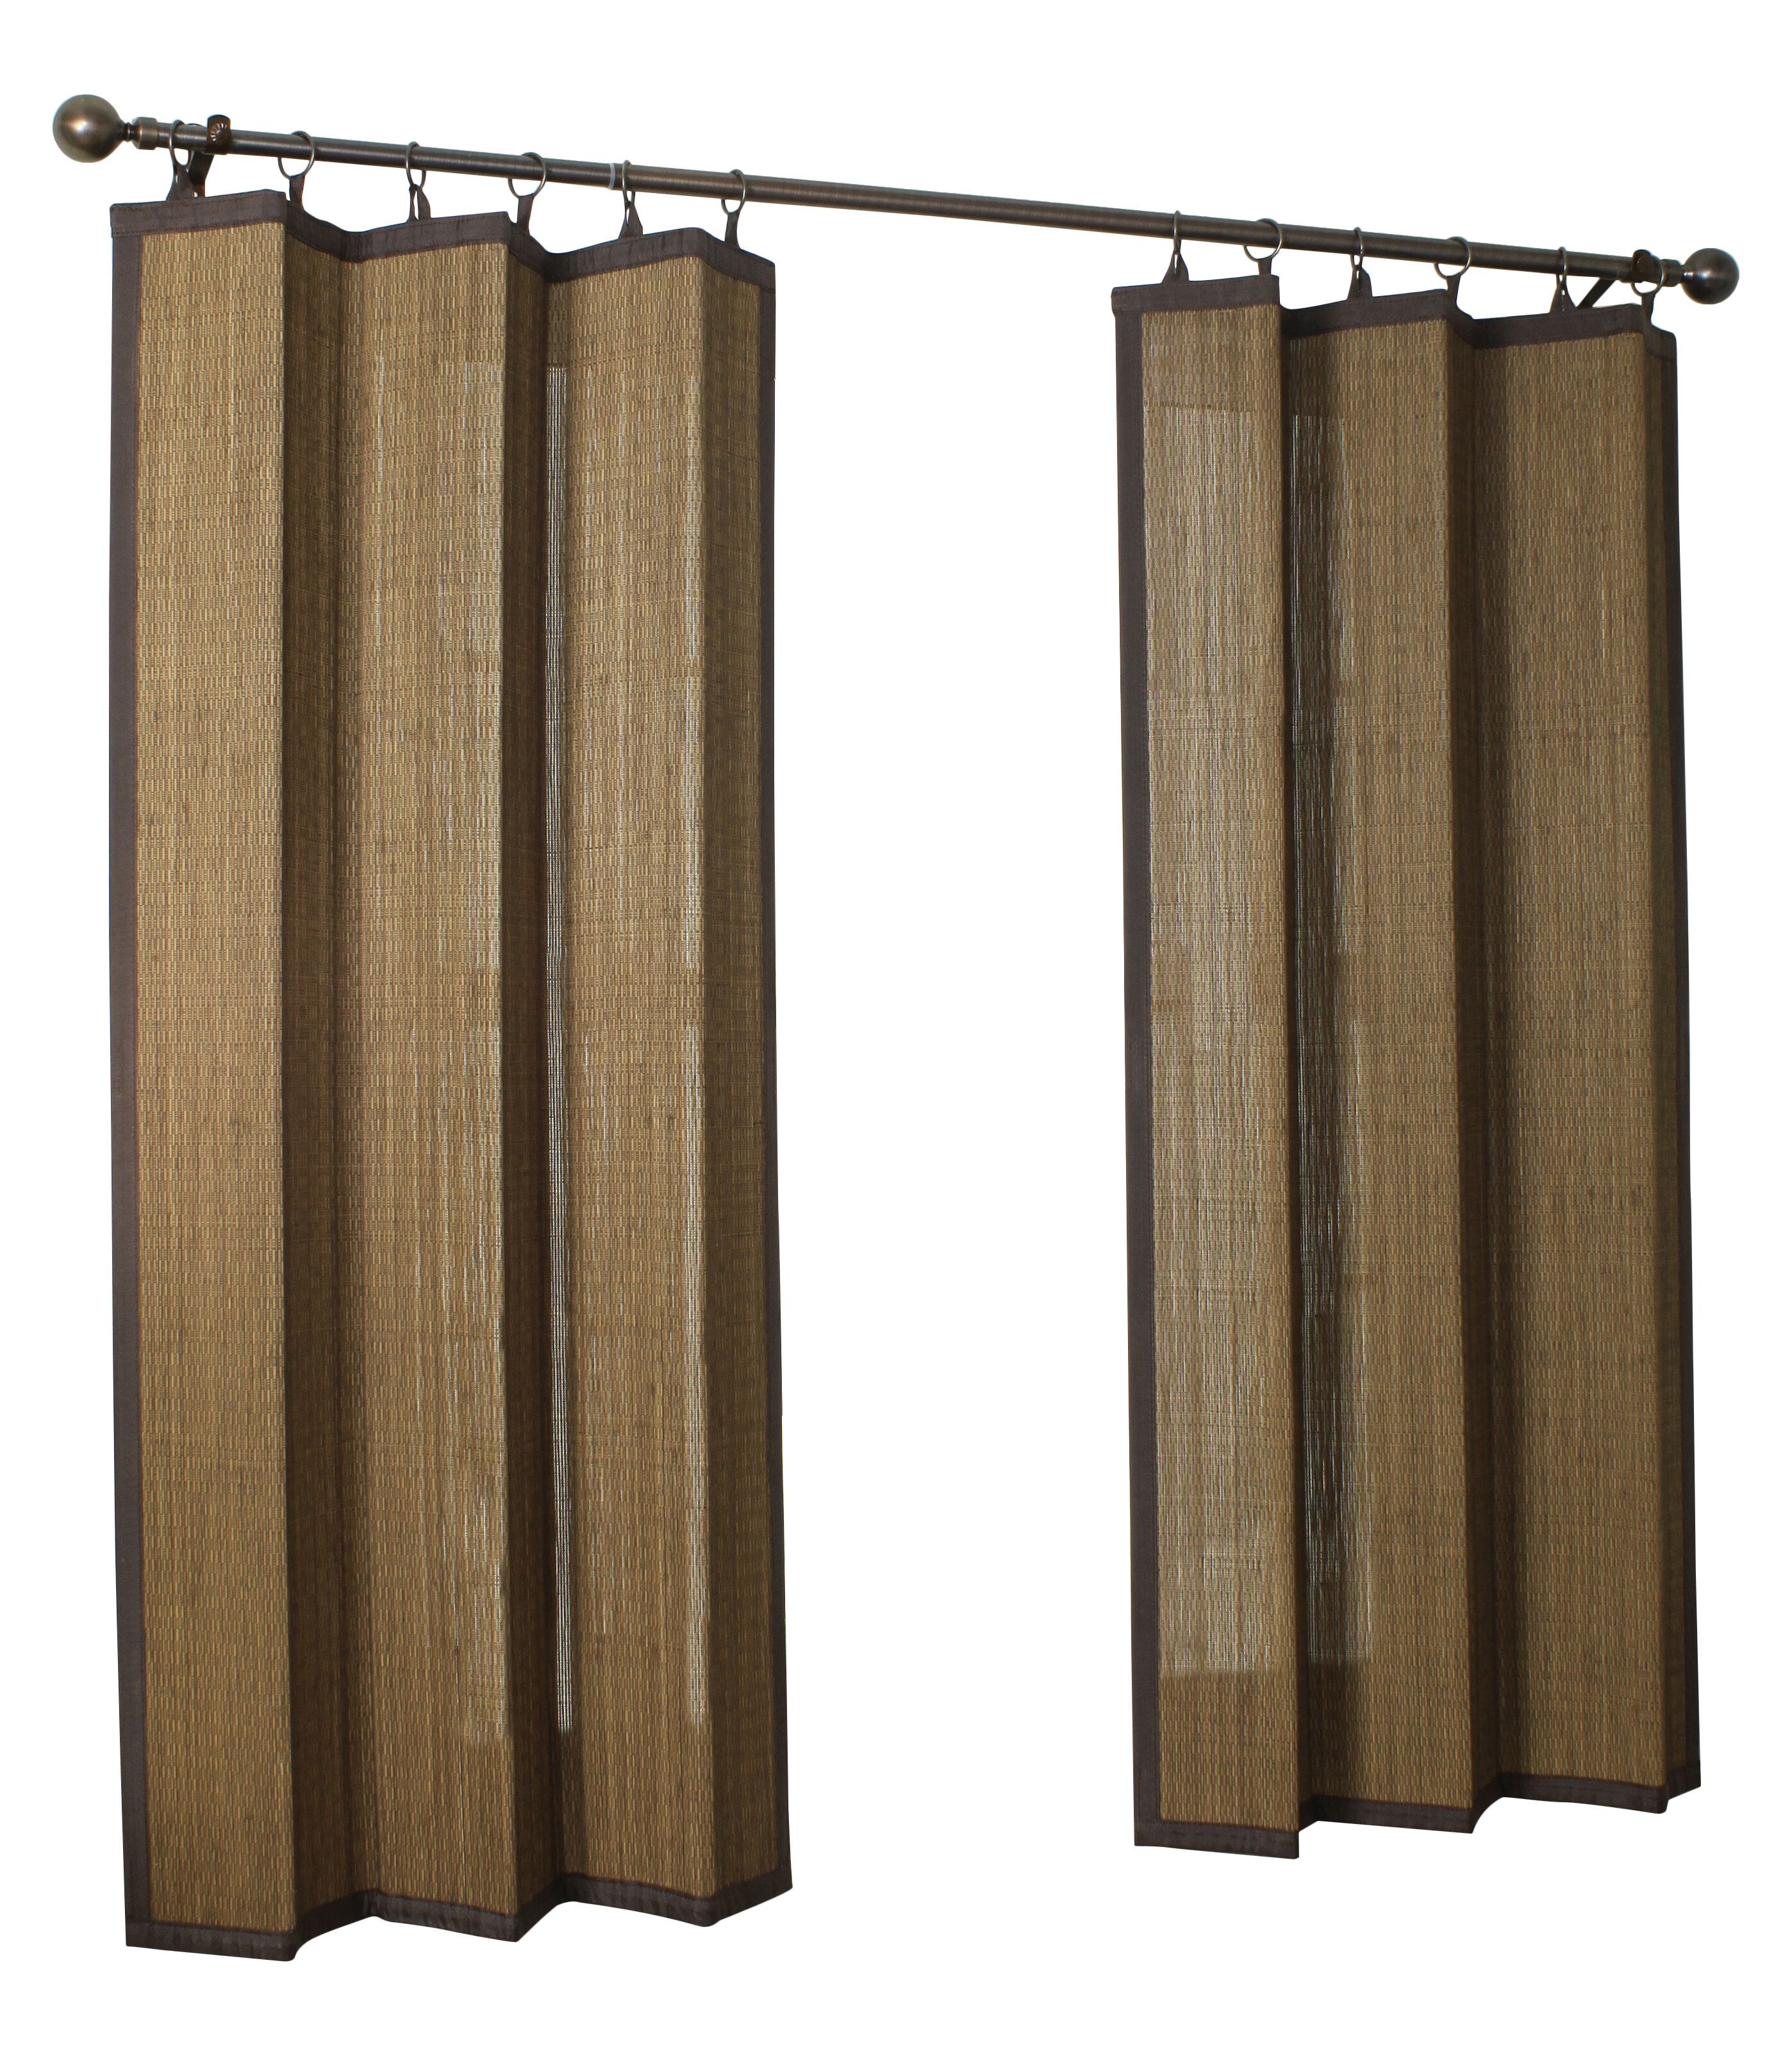 tab bamboo top windows ring drapes back curtains espresso drapery product online interior design